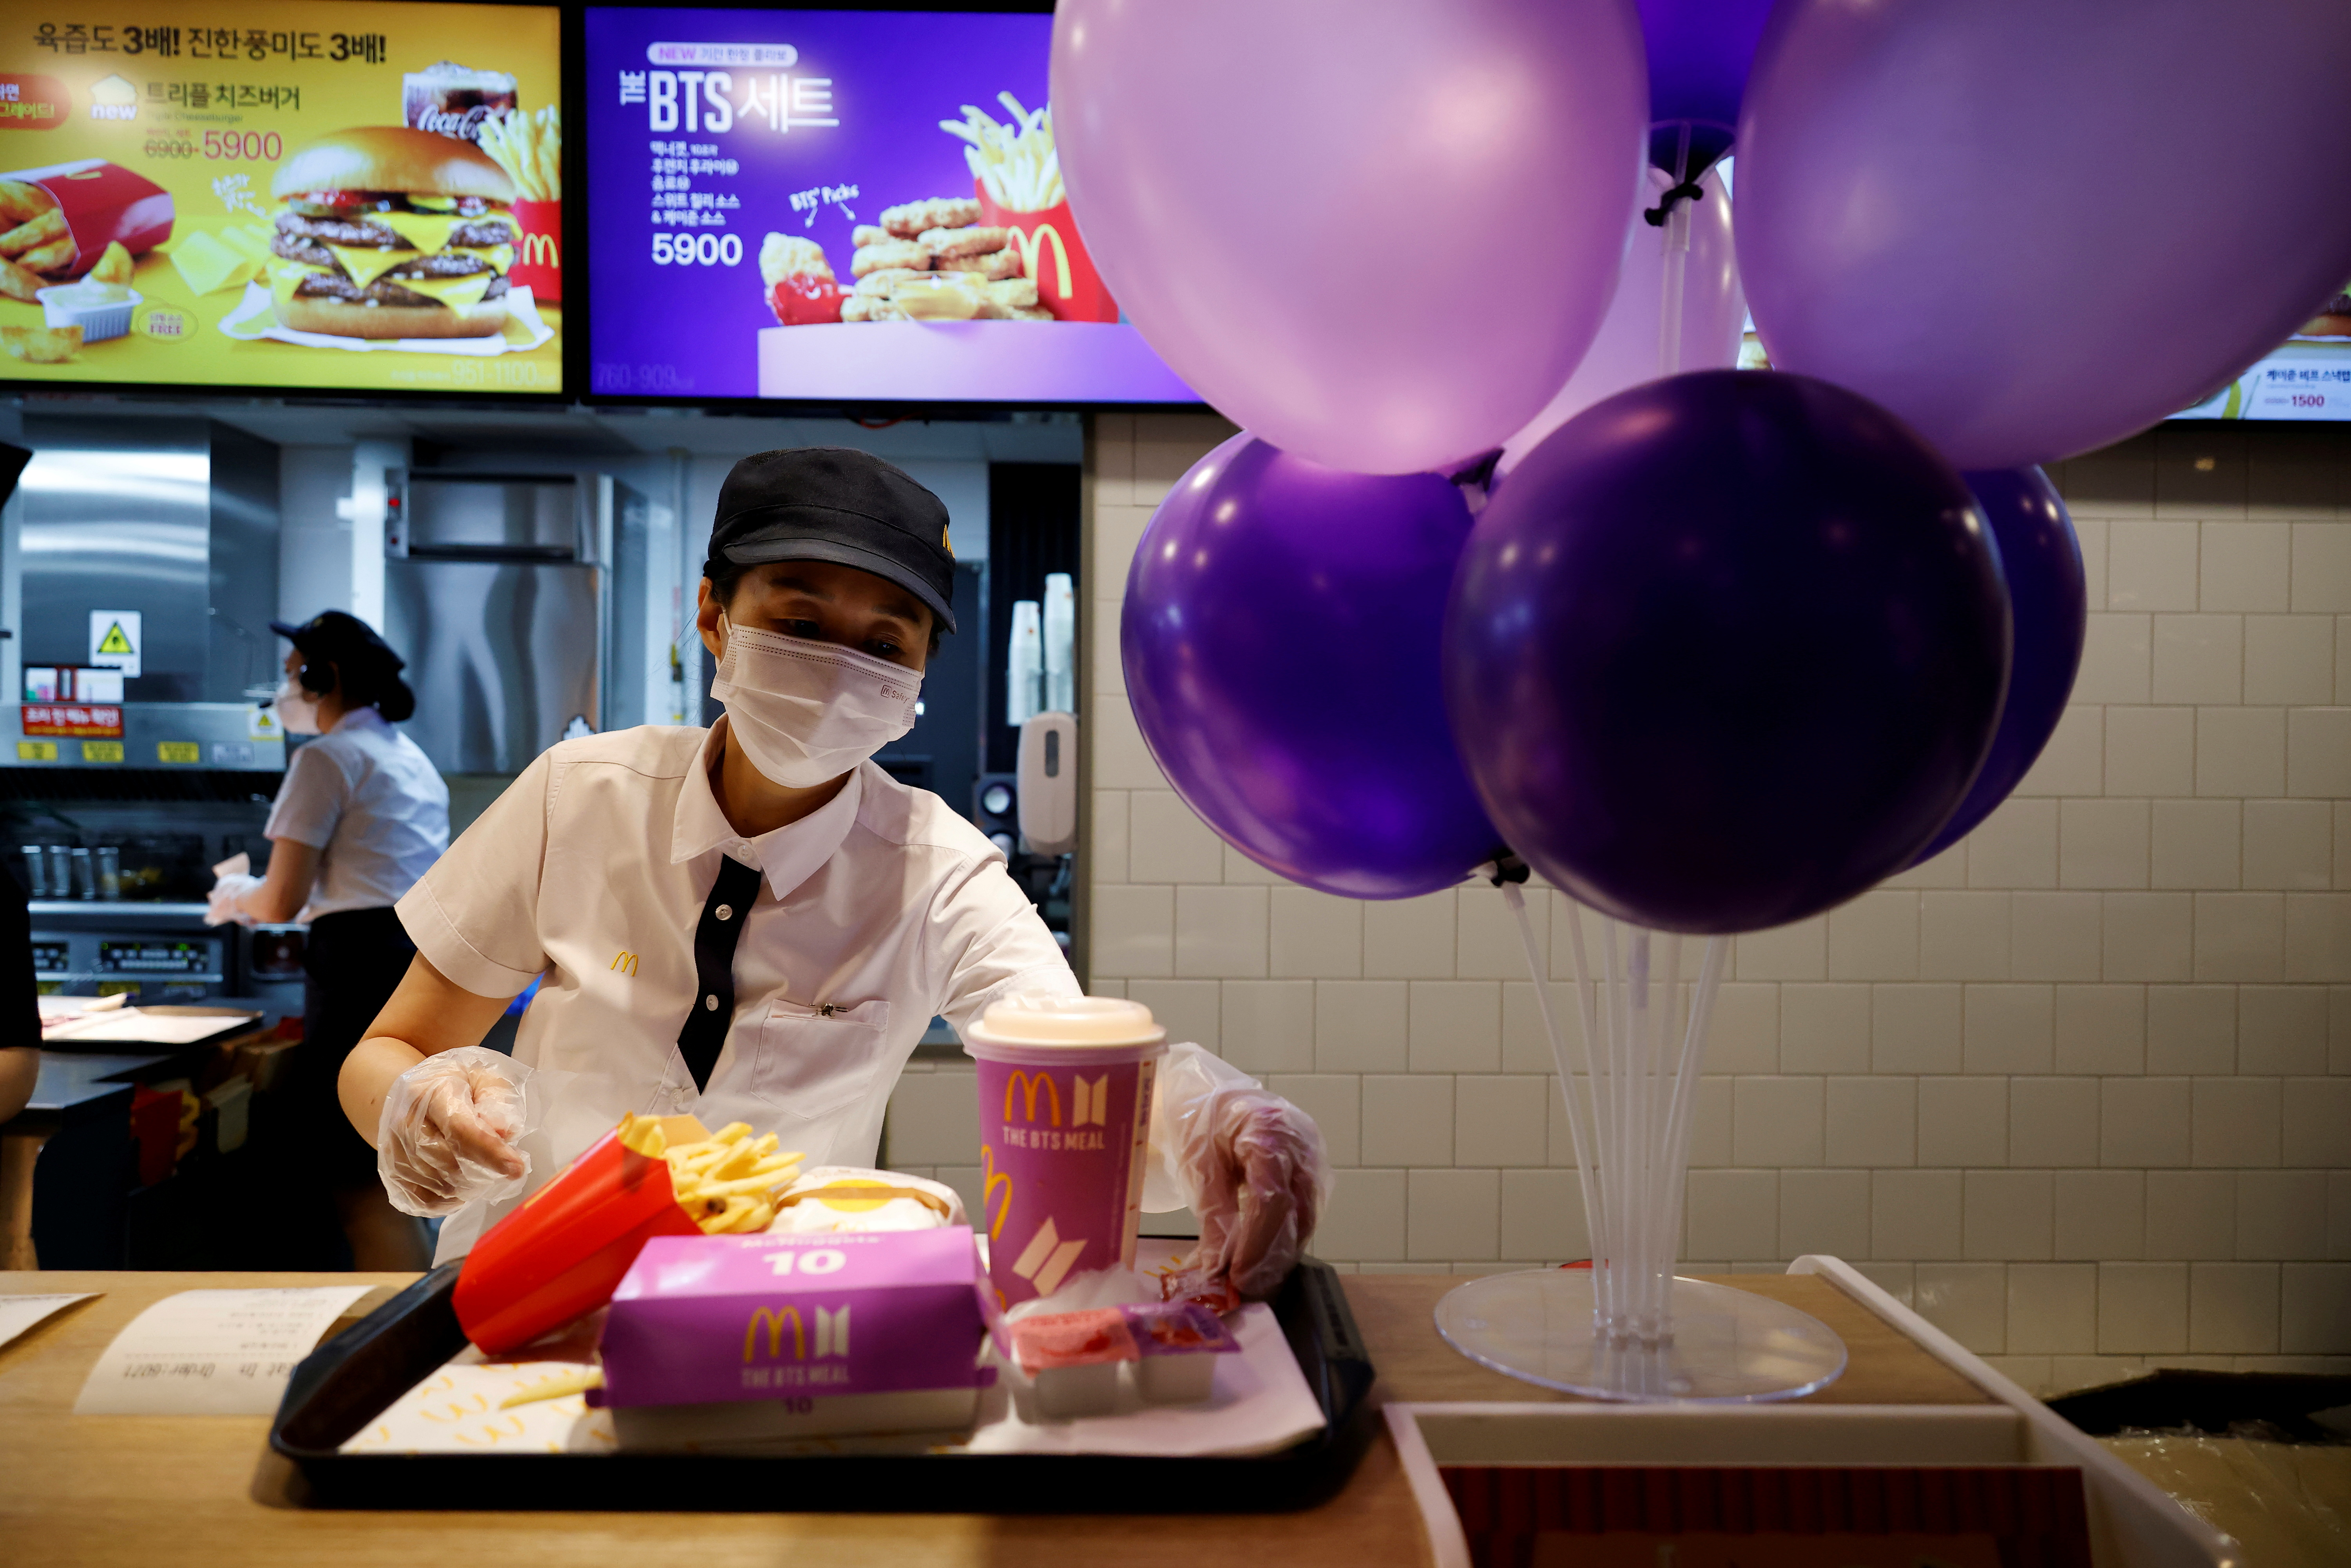 An employee of McDonald's serves a BTS meal, which is inspired and promoted by K-pop boy band BTS, during lunch hour at its restaurant in Seoul, South Korea, May 27, 2021.  REUTERS/Kim Hong-Ji/File Photo